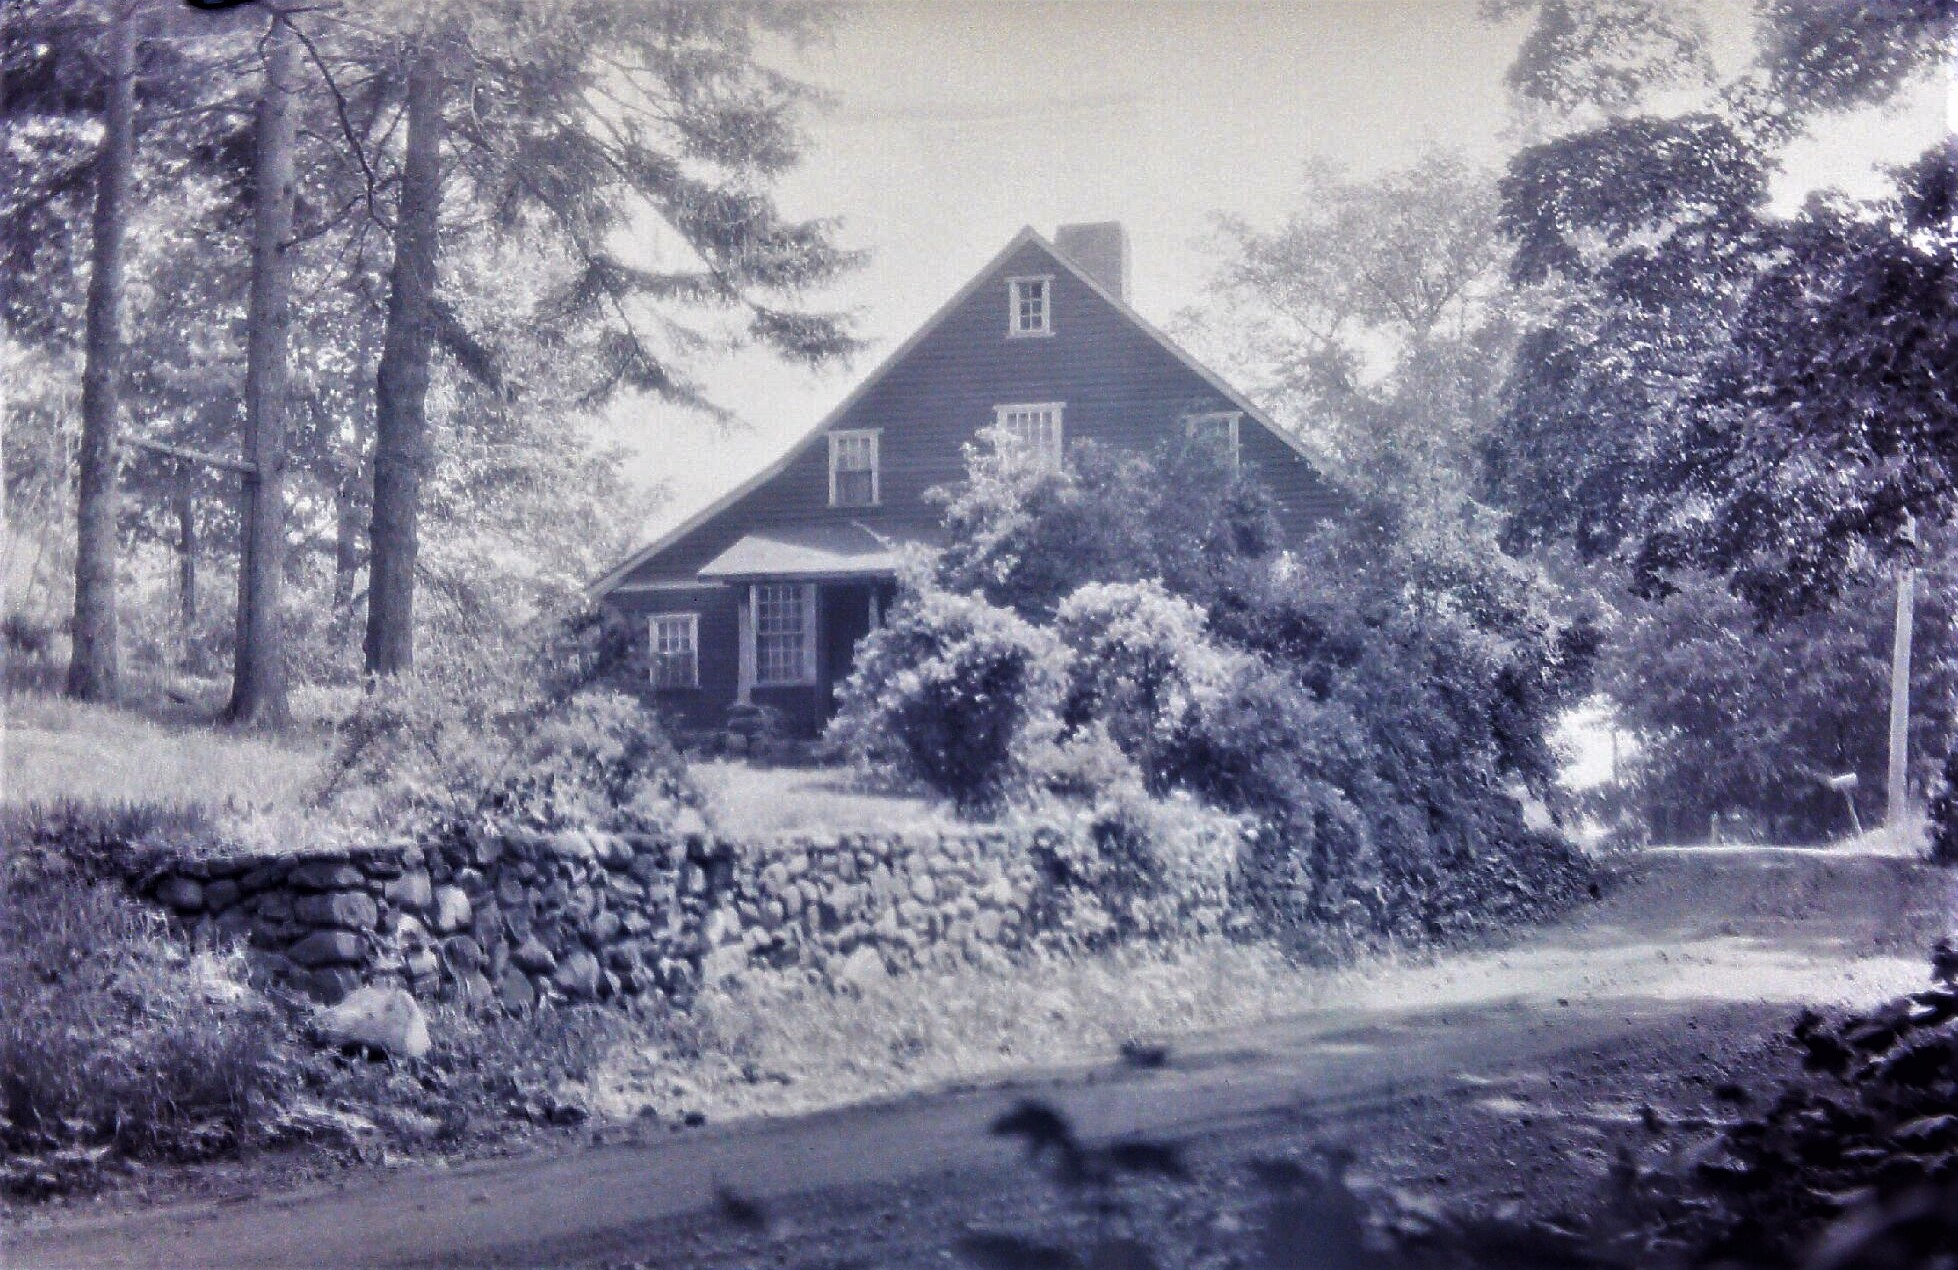 Caption: The Dickerman house located on the north side of Mt. Carmel Avenue in its original location. The photo was taken sometime between 1926 and 1927.